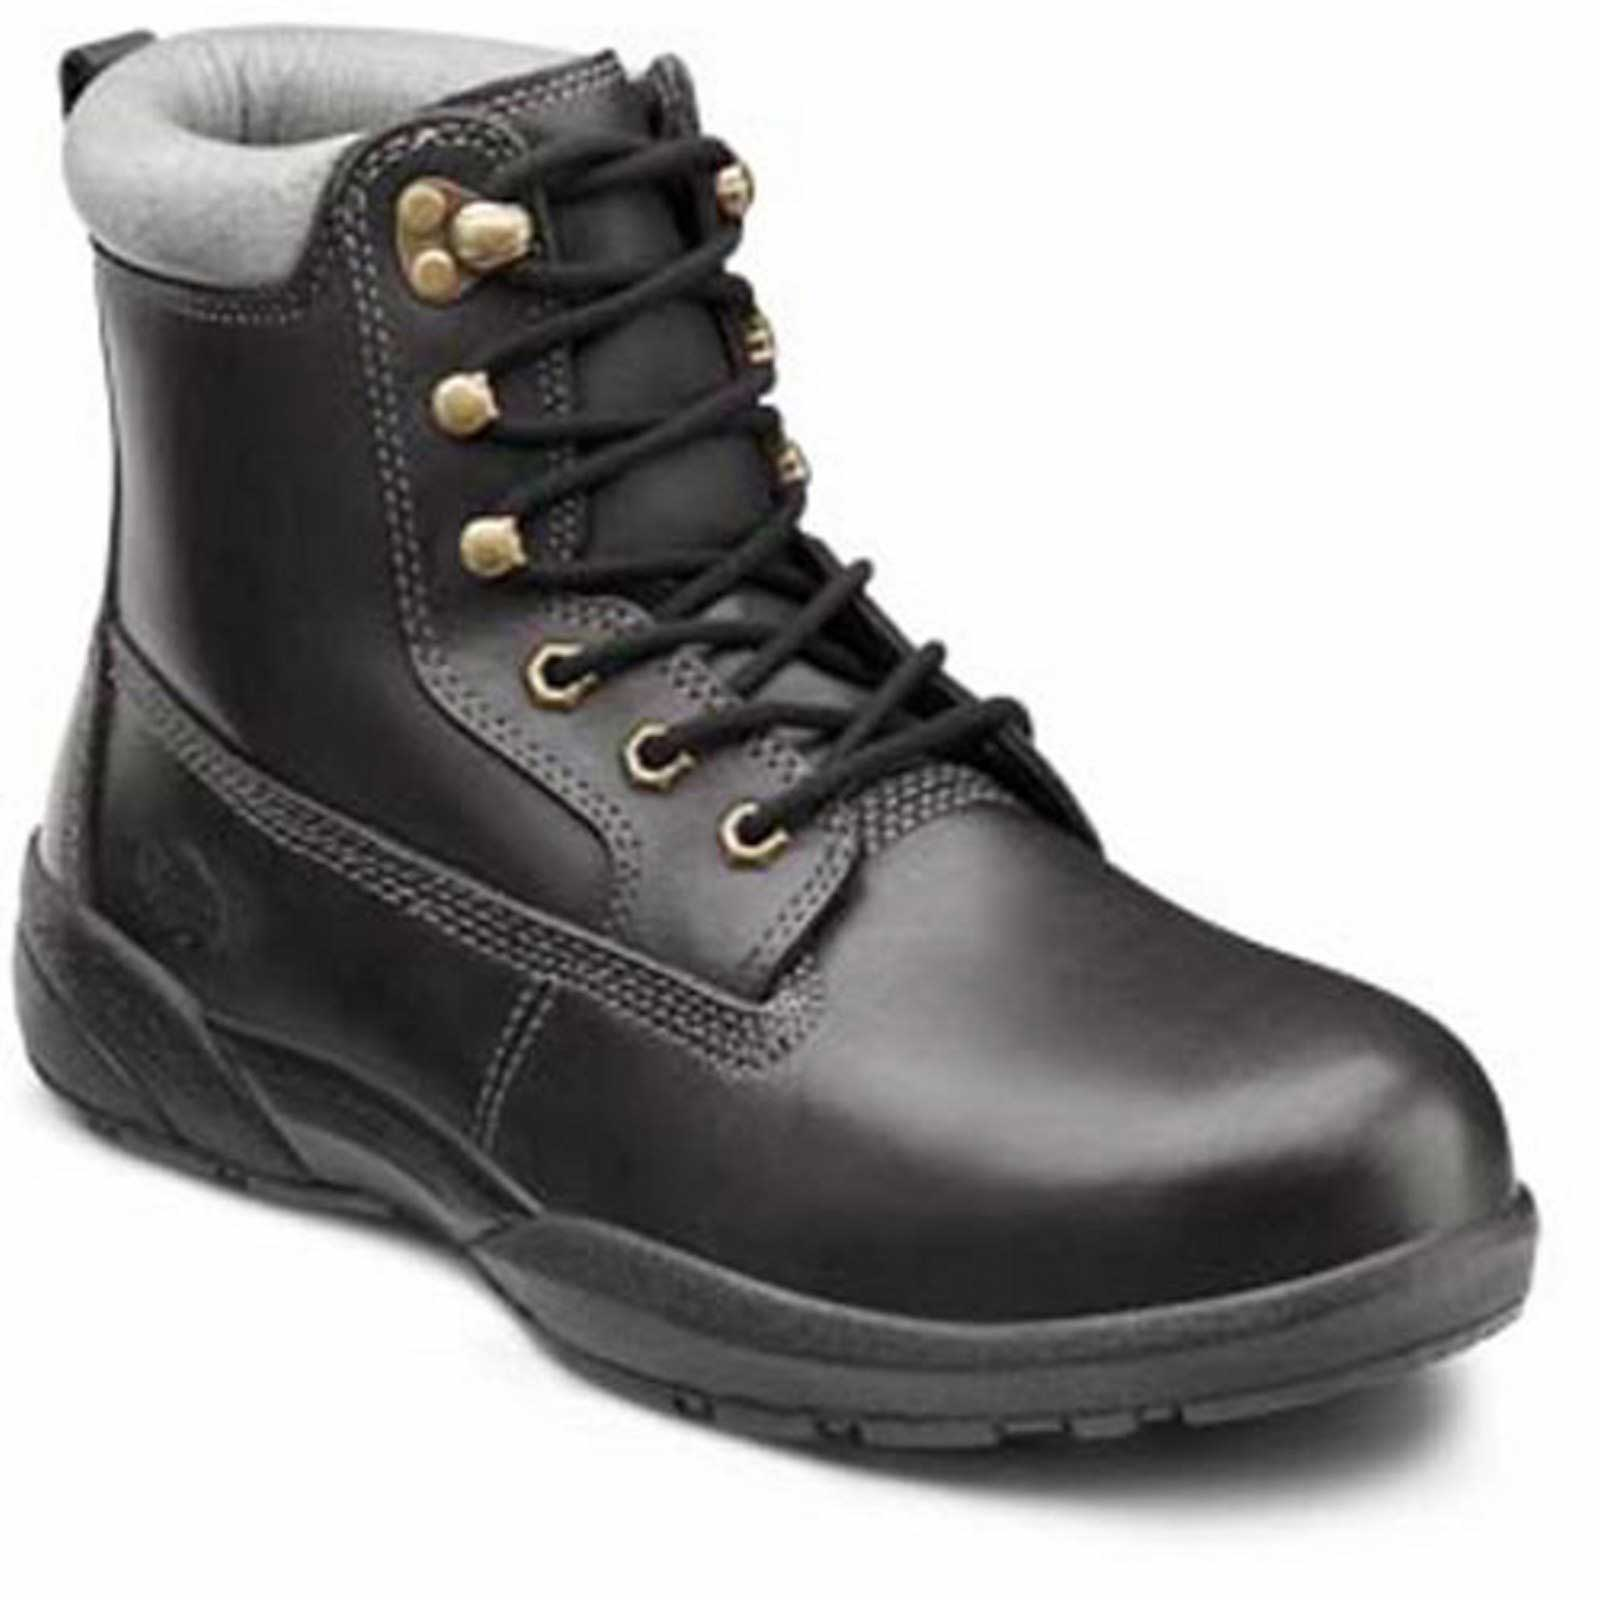 Comfortable Steel Toe Work Boots | Coltford Boots